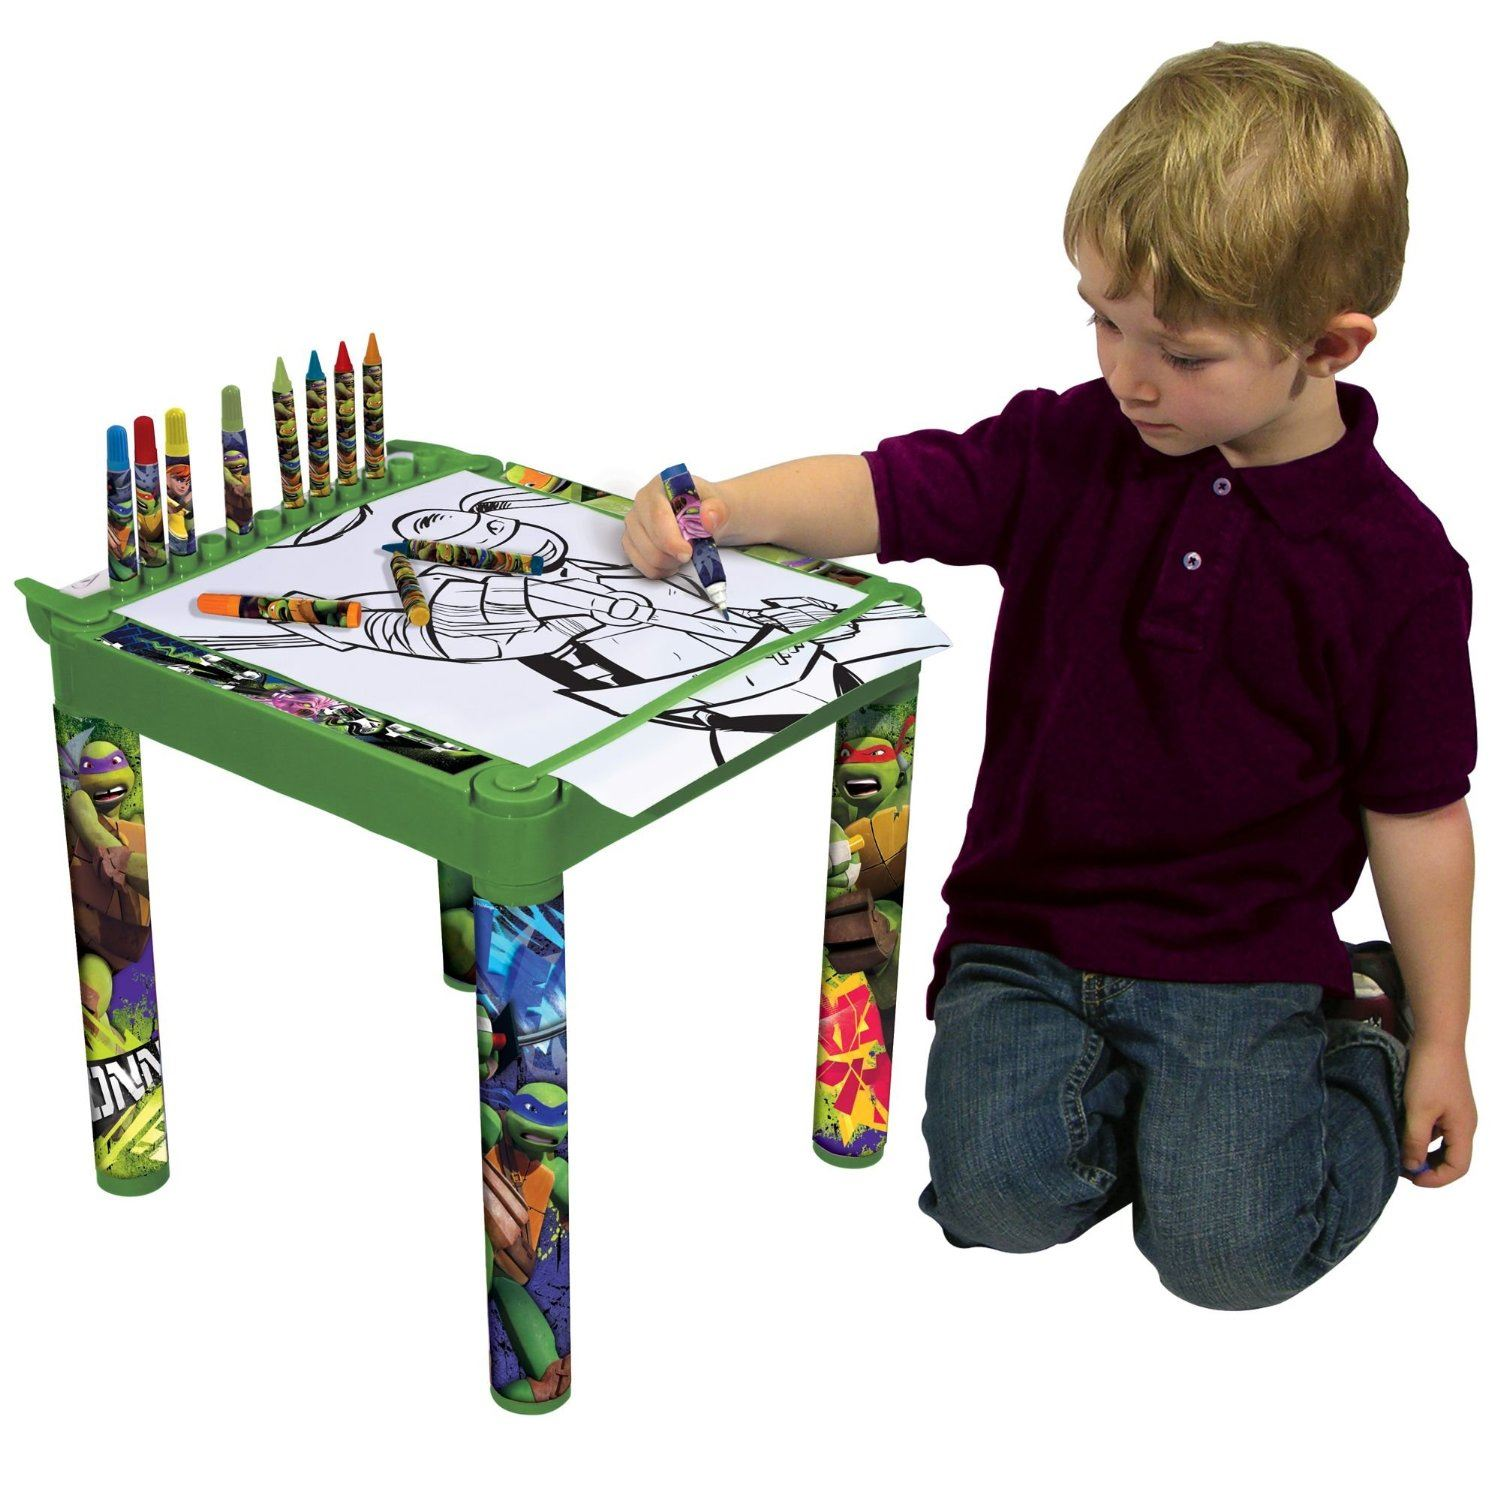 Kids Character Colouring Table Jumbo Crayons Markers & Paper Roll   eBay